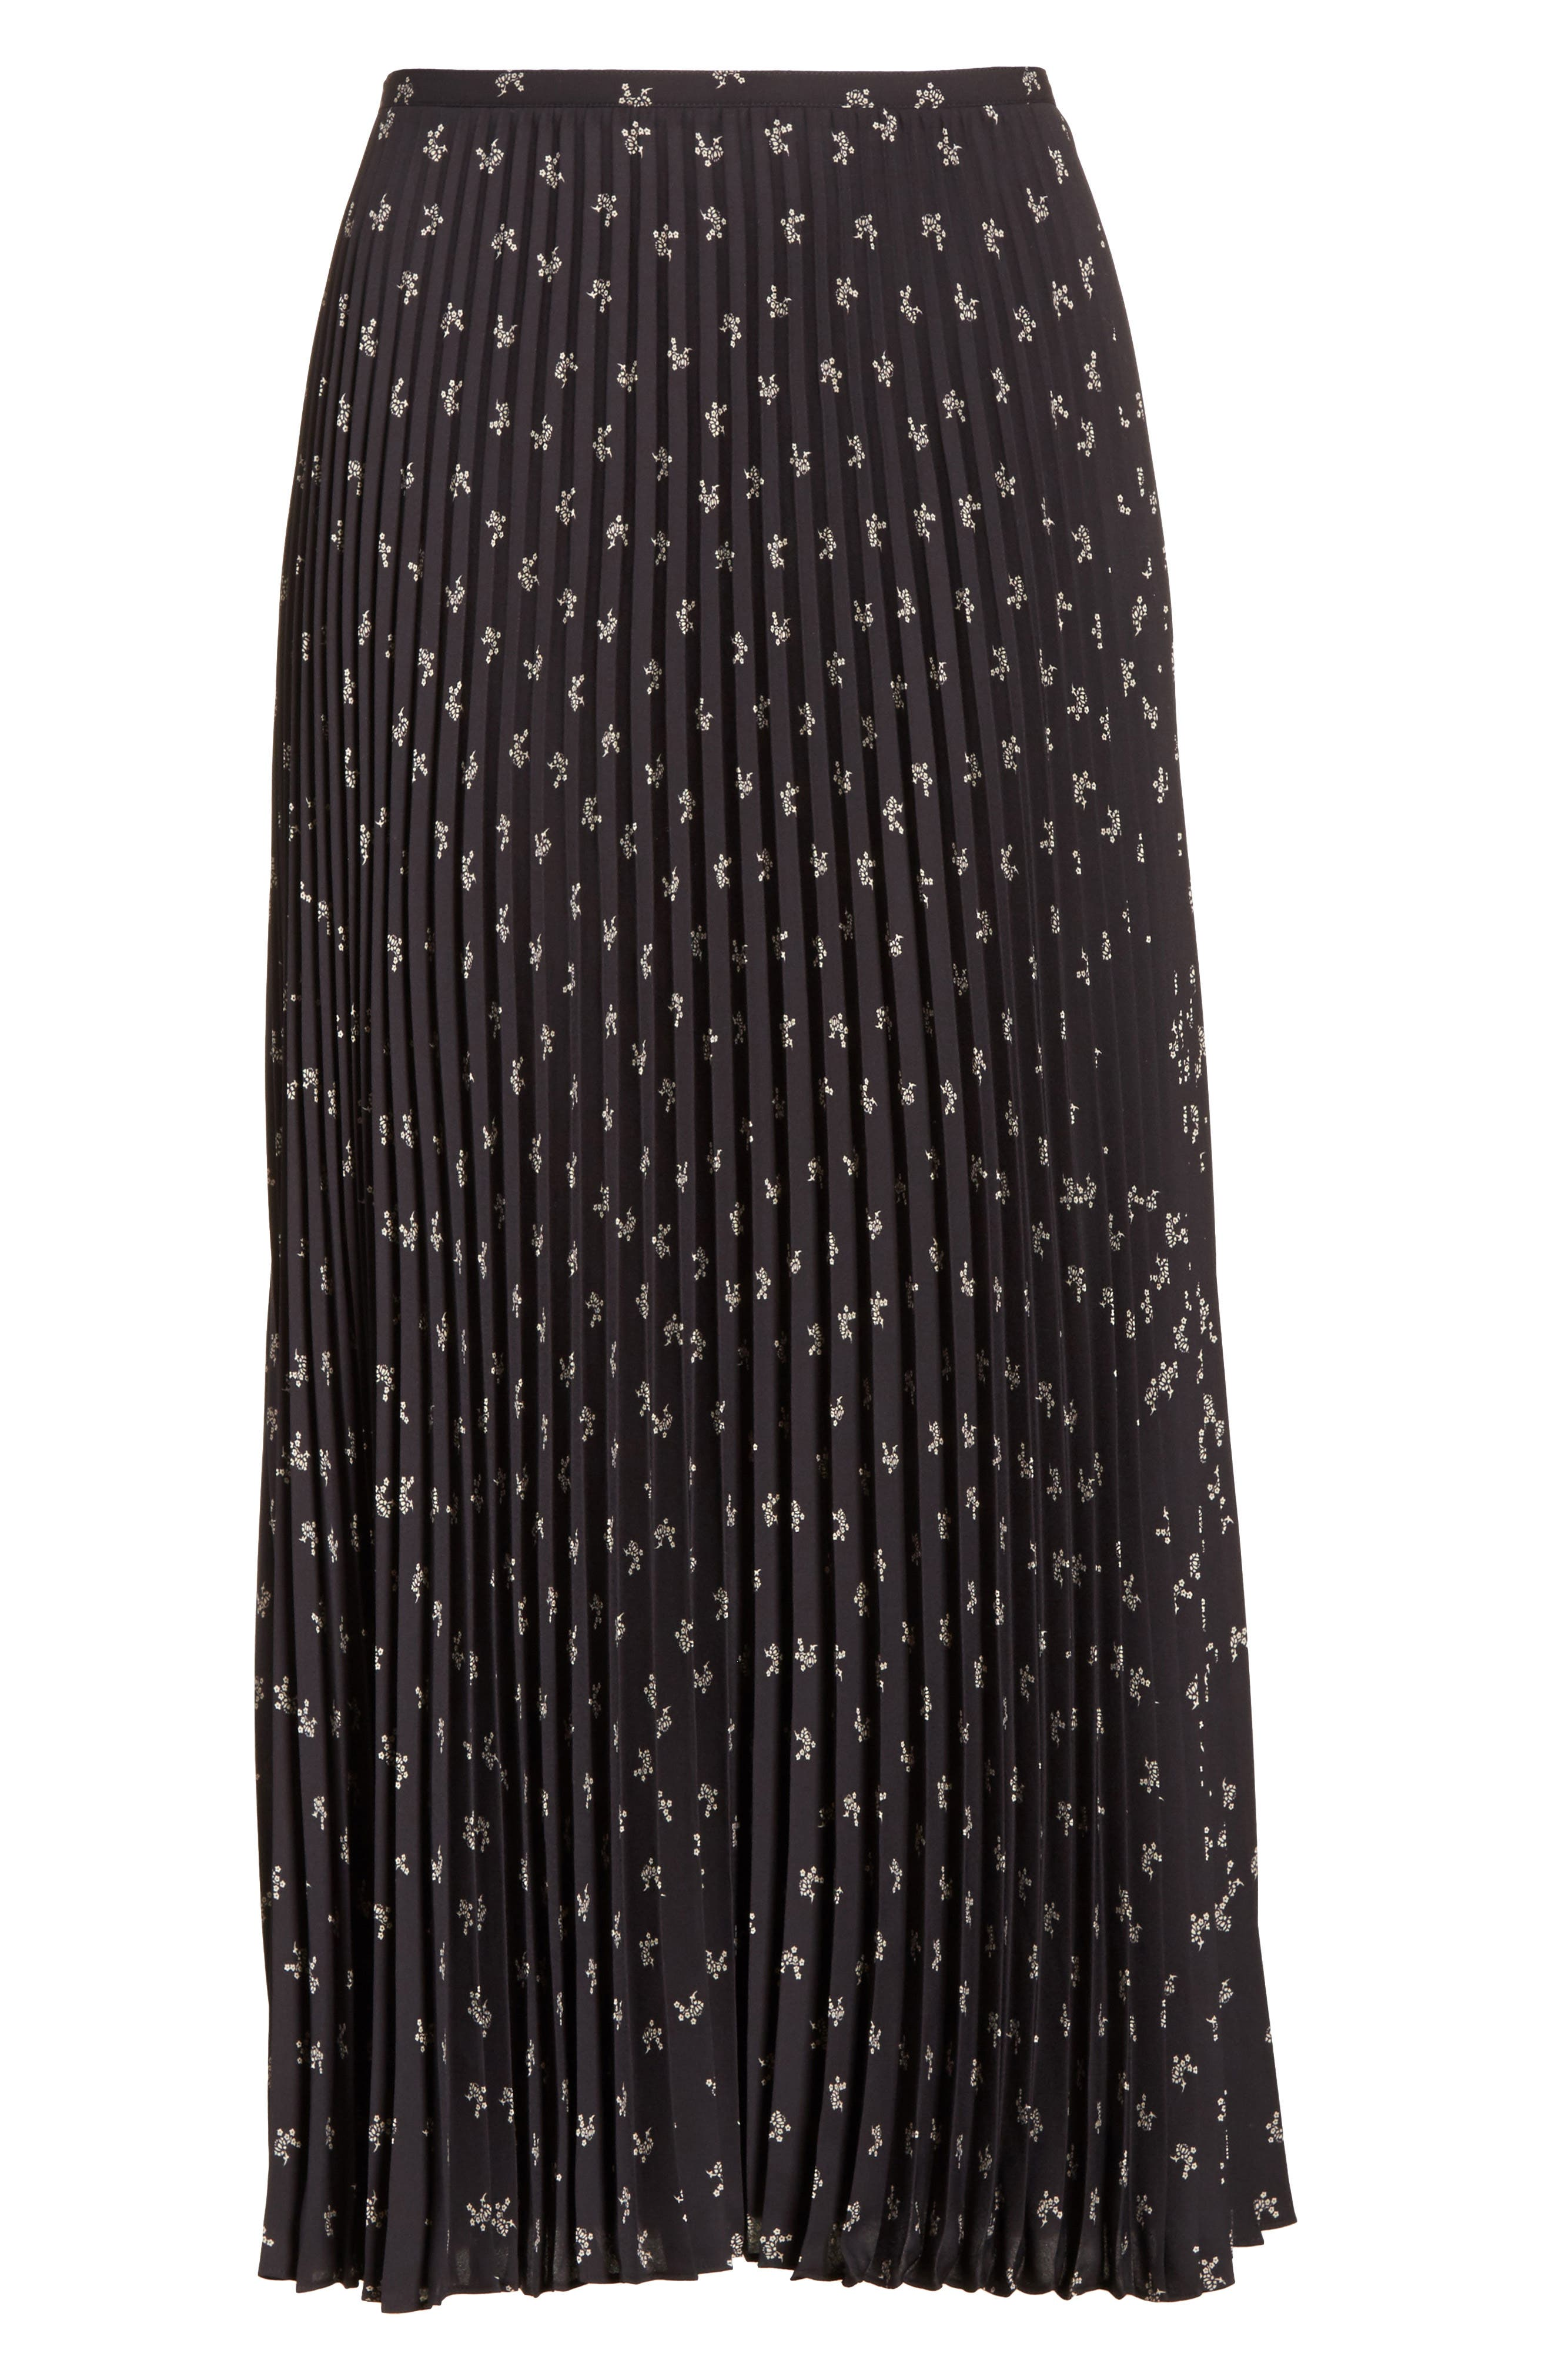 Tossed Ditsy Floral Pleated Skirt,                             Alternate thumbnail 6, color,                             008